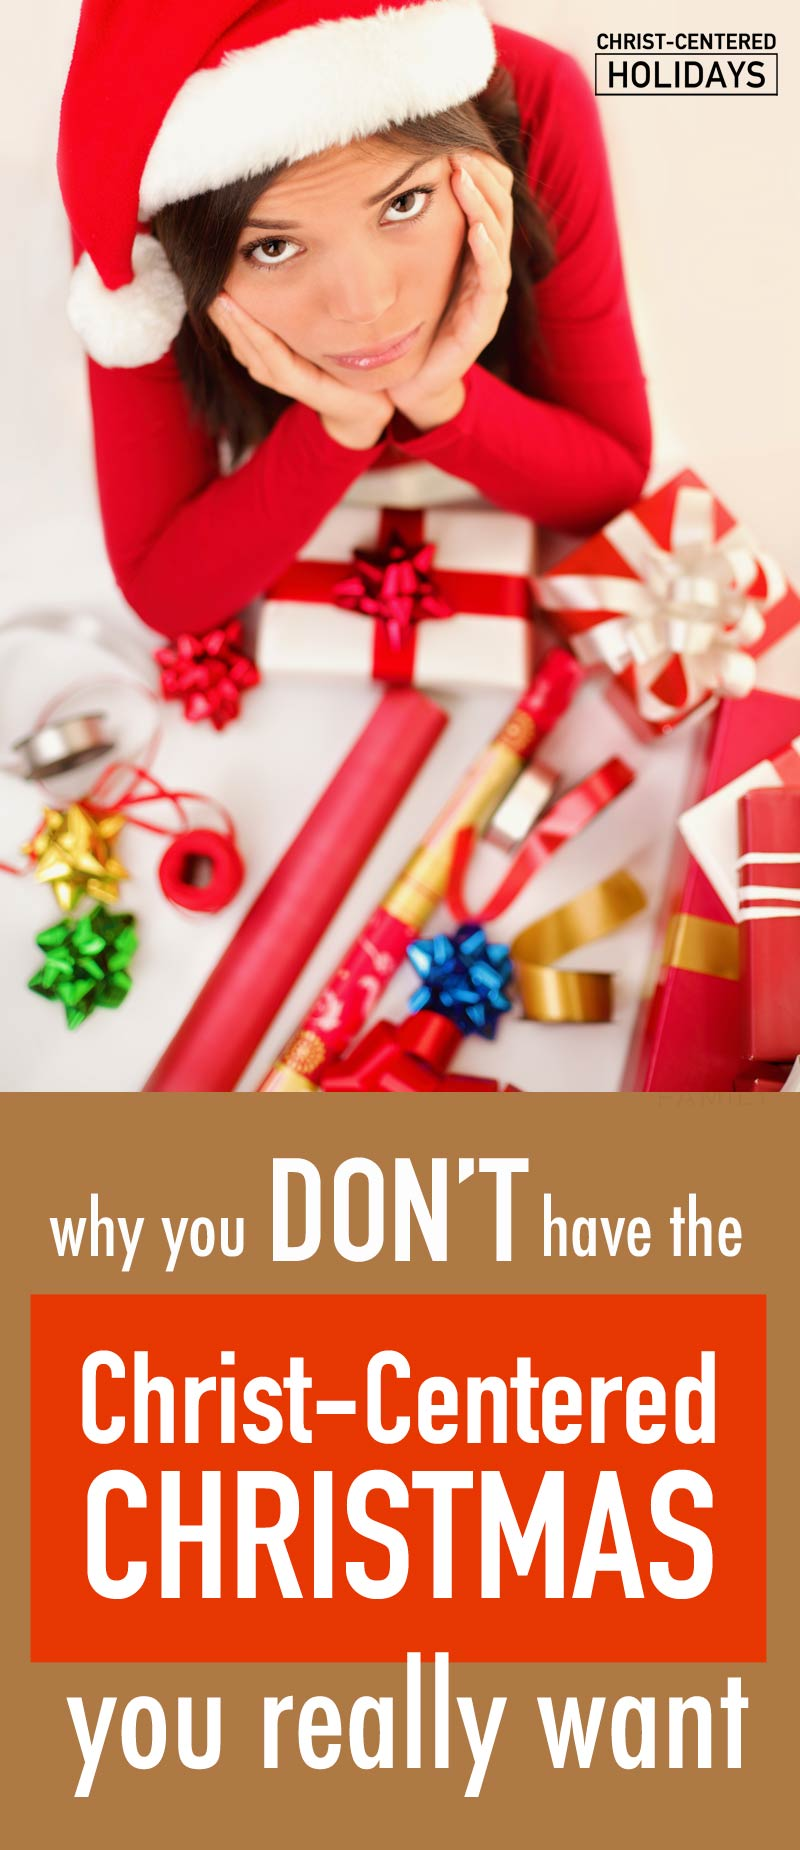 Looking for a more meaningful Christ centered Christmas (and not just exhaustion and busy-ness at the holidays)? Here are 6 mindsets to avoid, and two powerful strategies to make it easy to discover the Christ centered Christmas we all long for!